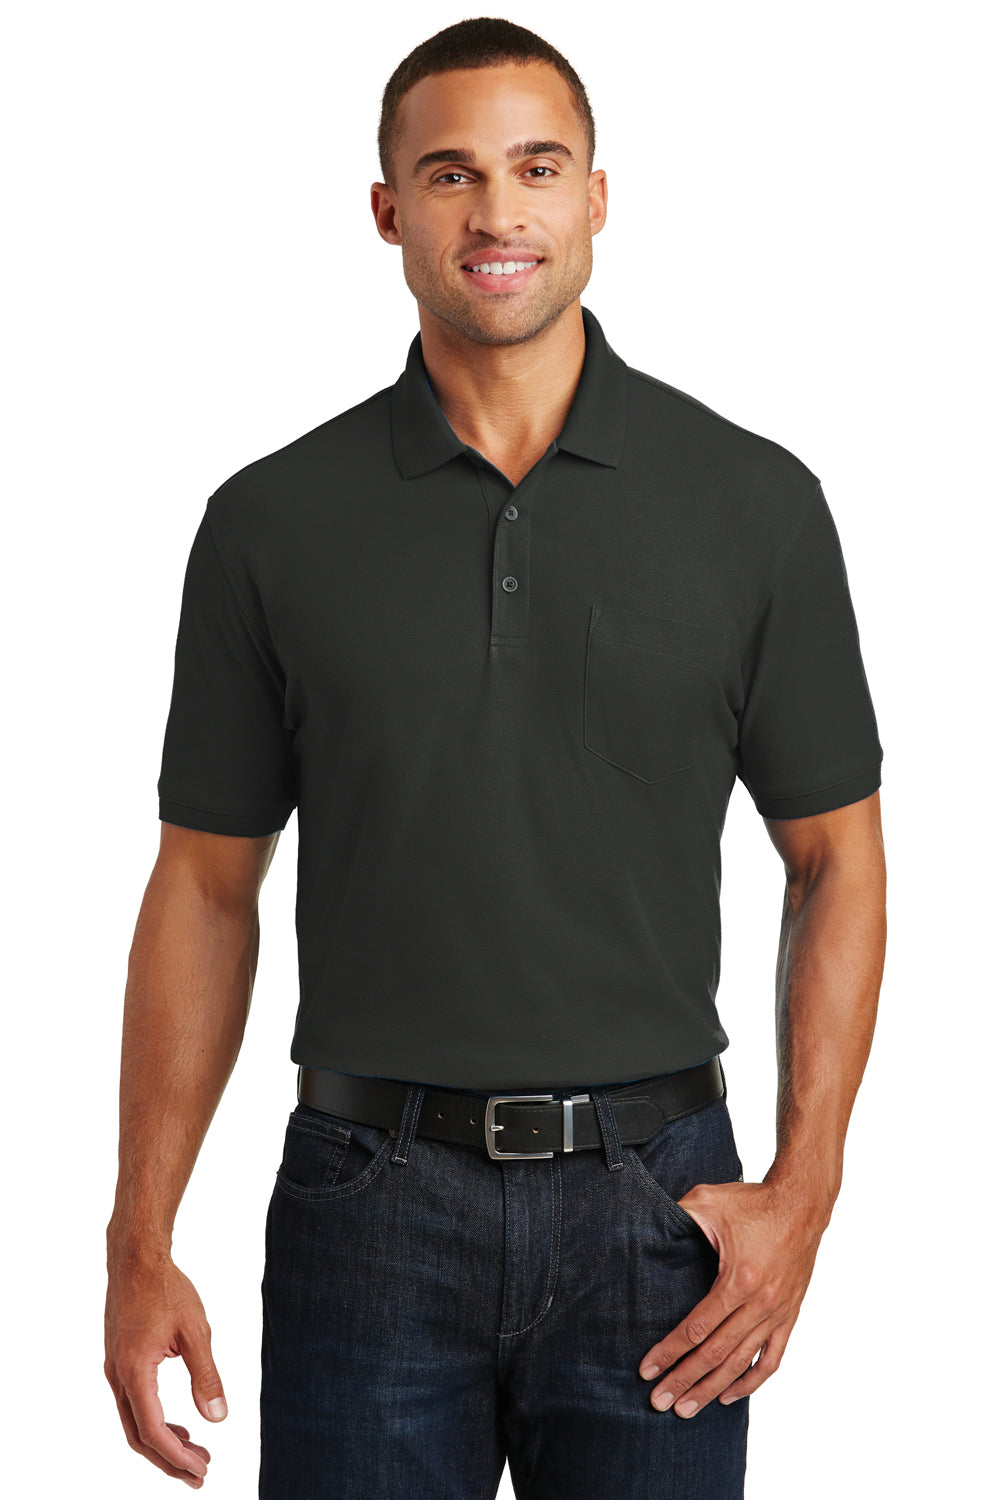 Port Authority K100P Mens Core Classic Short Sleeve Polo Shirt w/ Pocket Black Front